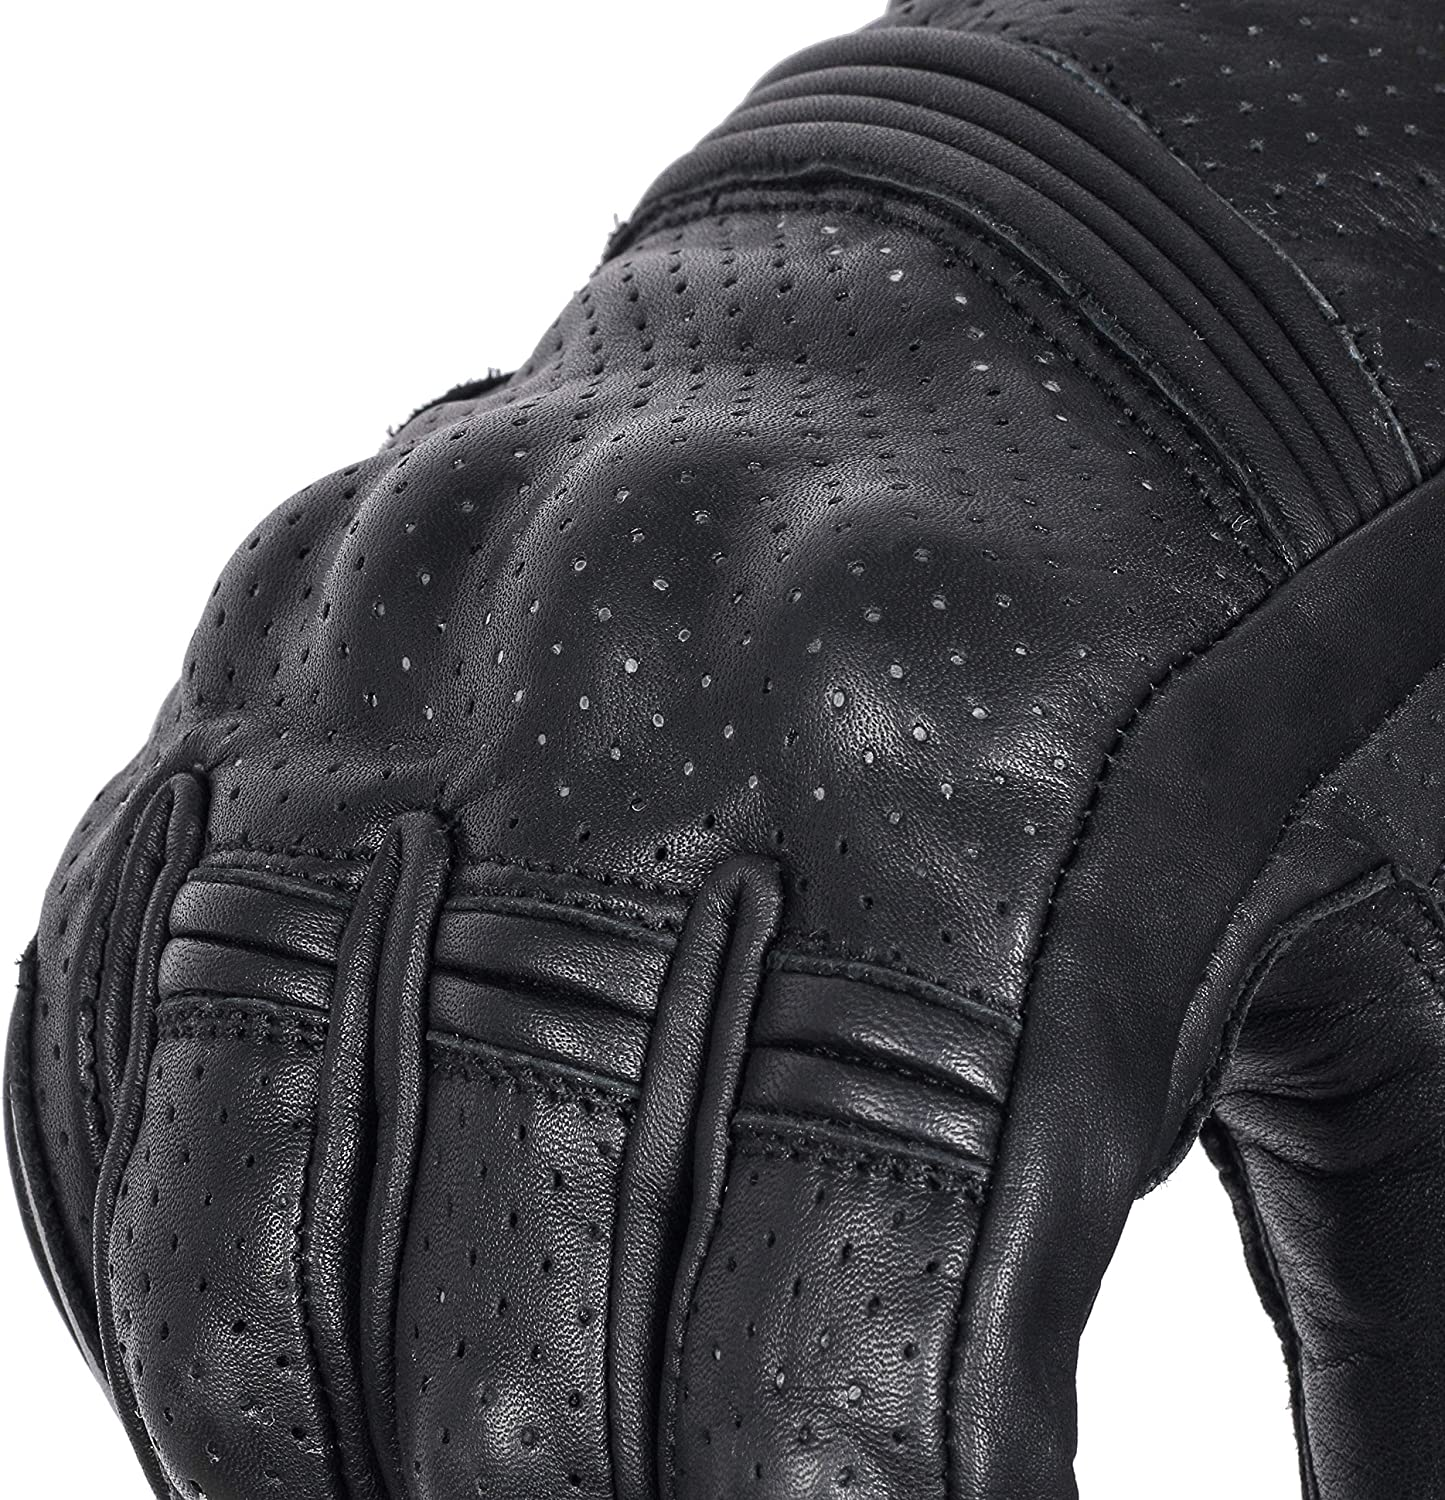 Mobile Touchscreen Full Finger Gloves for Cycling Motorbike ATV Bike Camping Climbing Hiking Work Outdoor Sports Perforated Men Gloves Black, L Premium Cowhide Leather Motorcycle Gloves Black